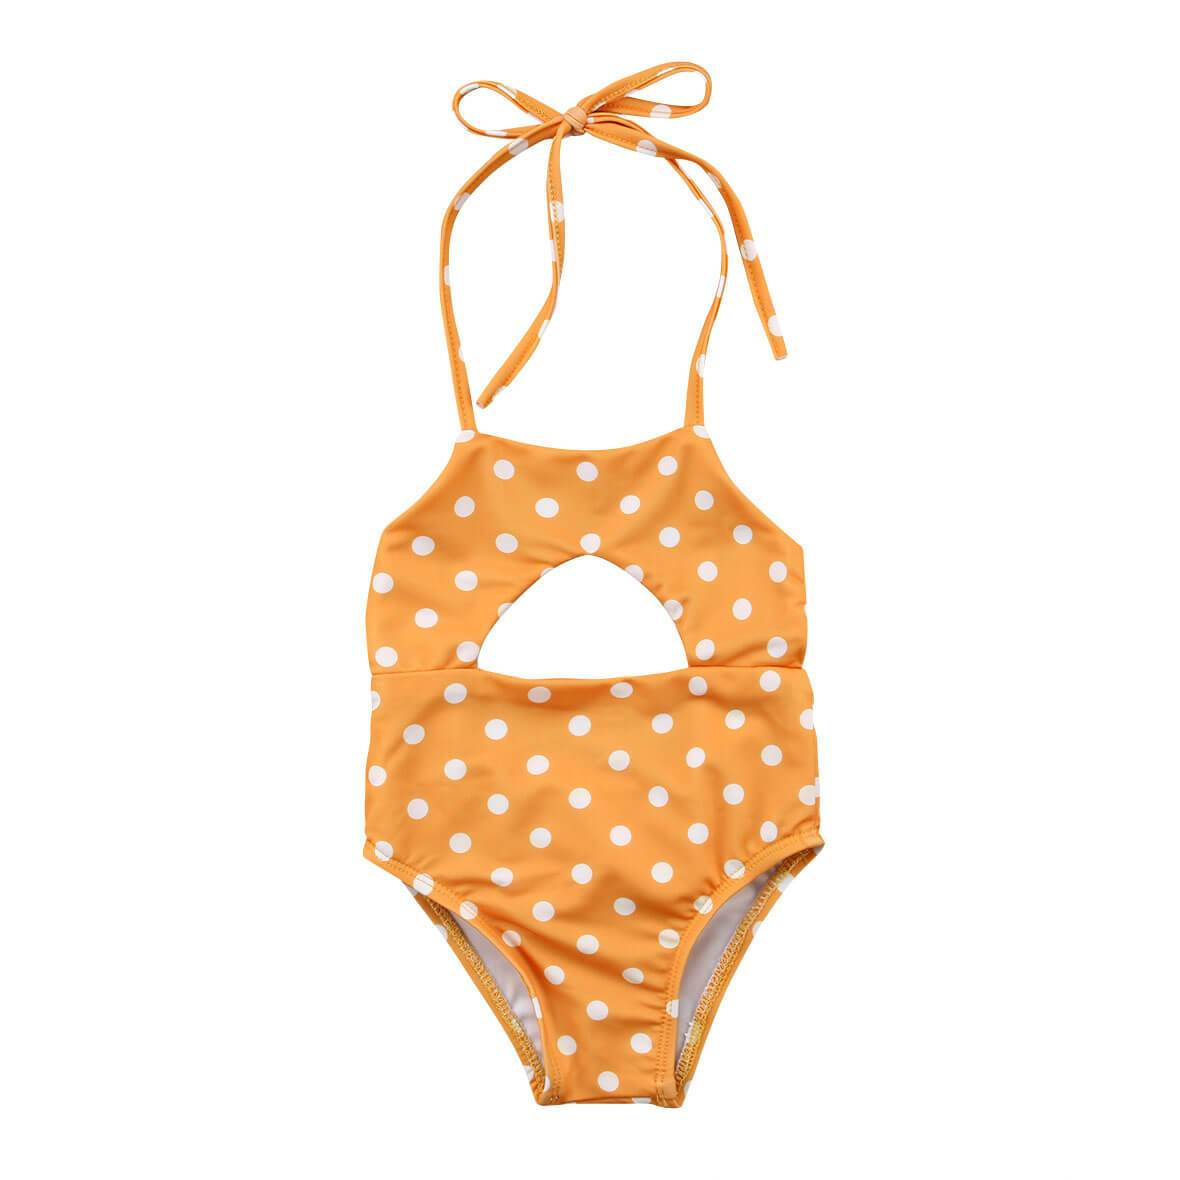 Polka Dot Yellow Swimsuit - The Trendy Toddlers